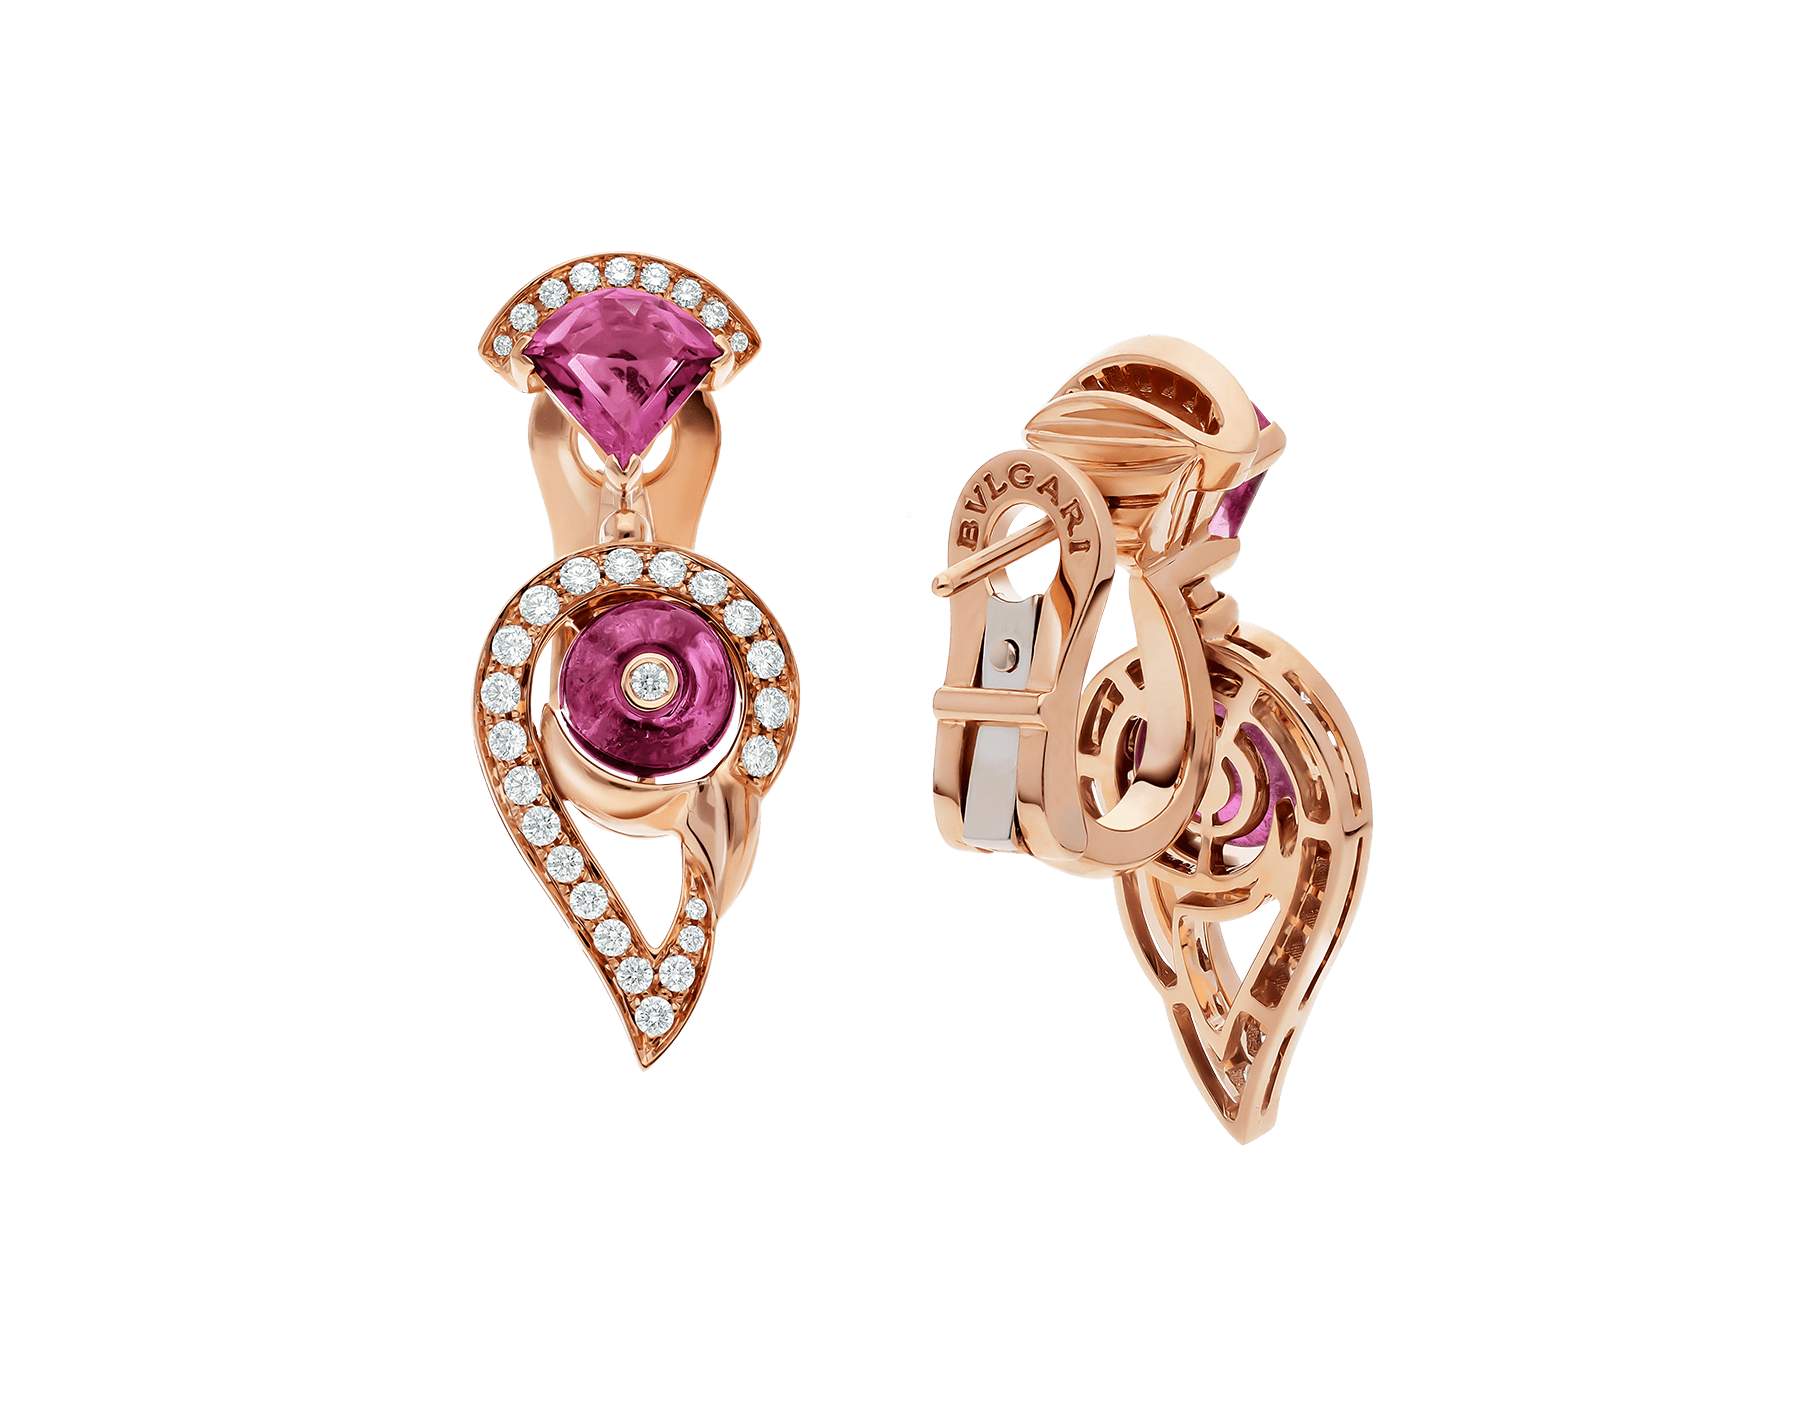 Boucles d'oreille DIVAS' DREAM en or rose 18 K serties de rubellite rose et tourmaline rose avec pavé diamants. 354079 image 3